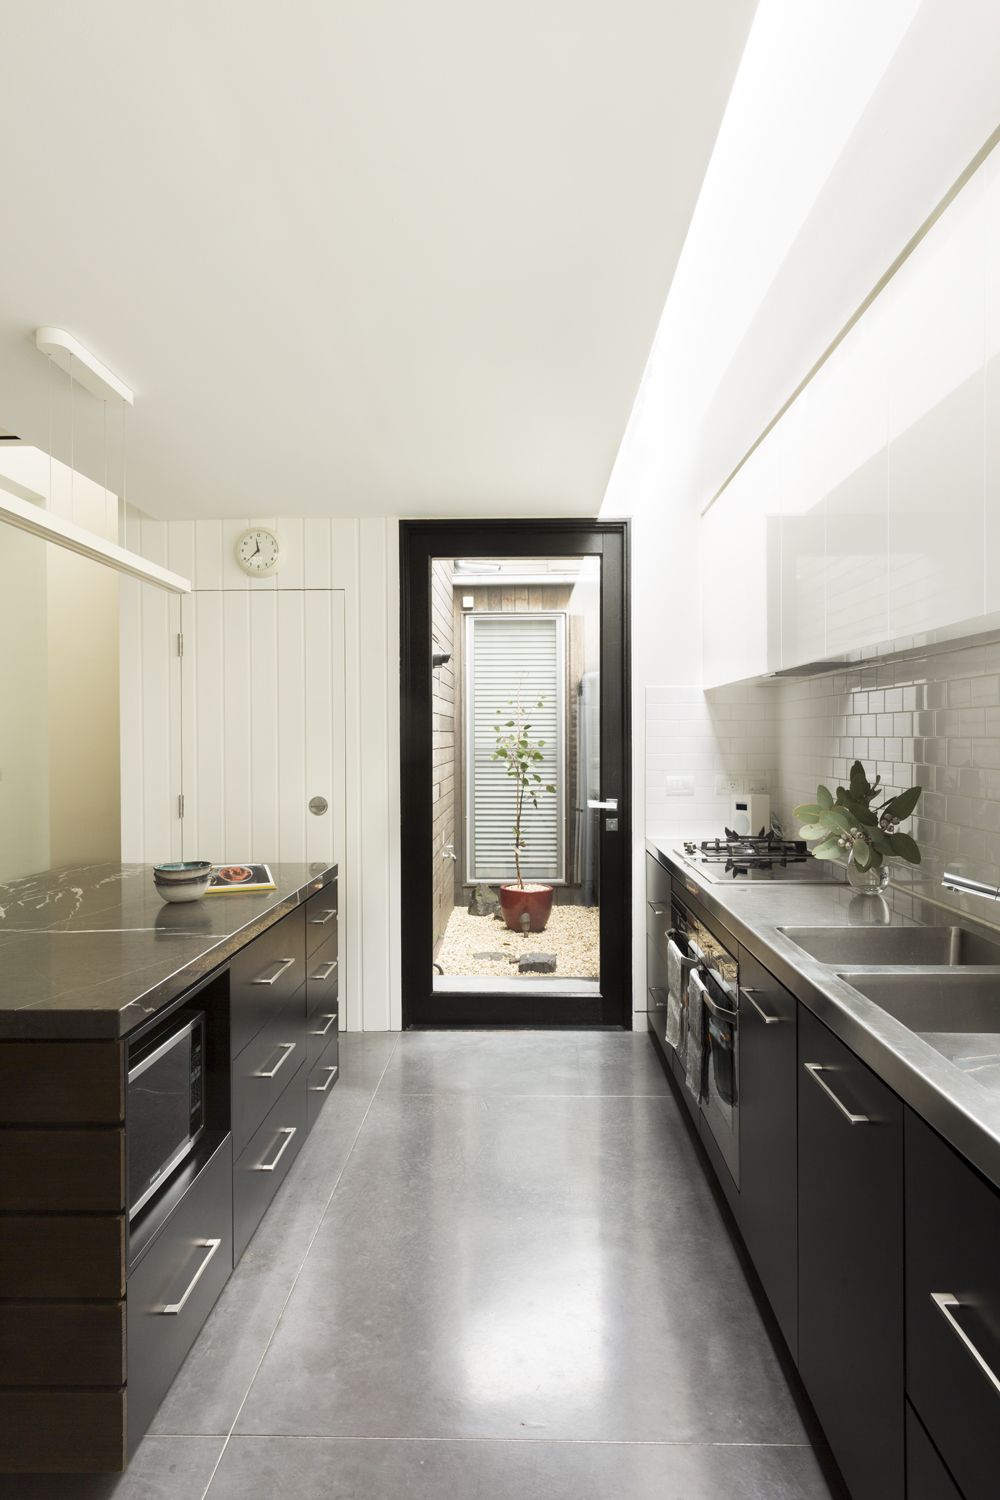 Kitchen design interior designer Melbourne bathroom design ideas